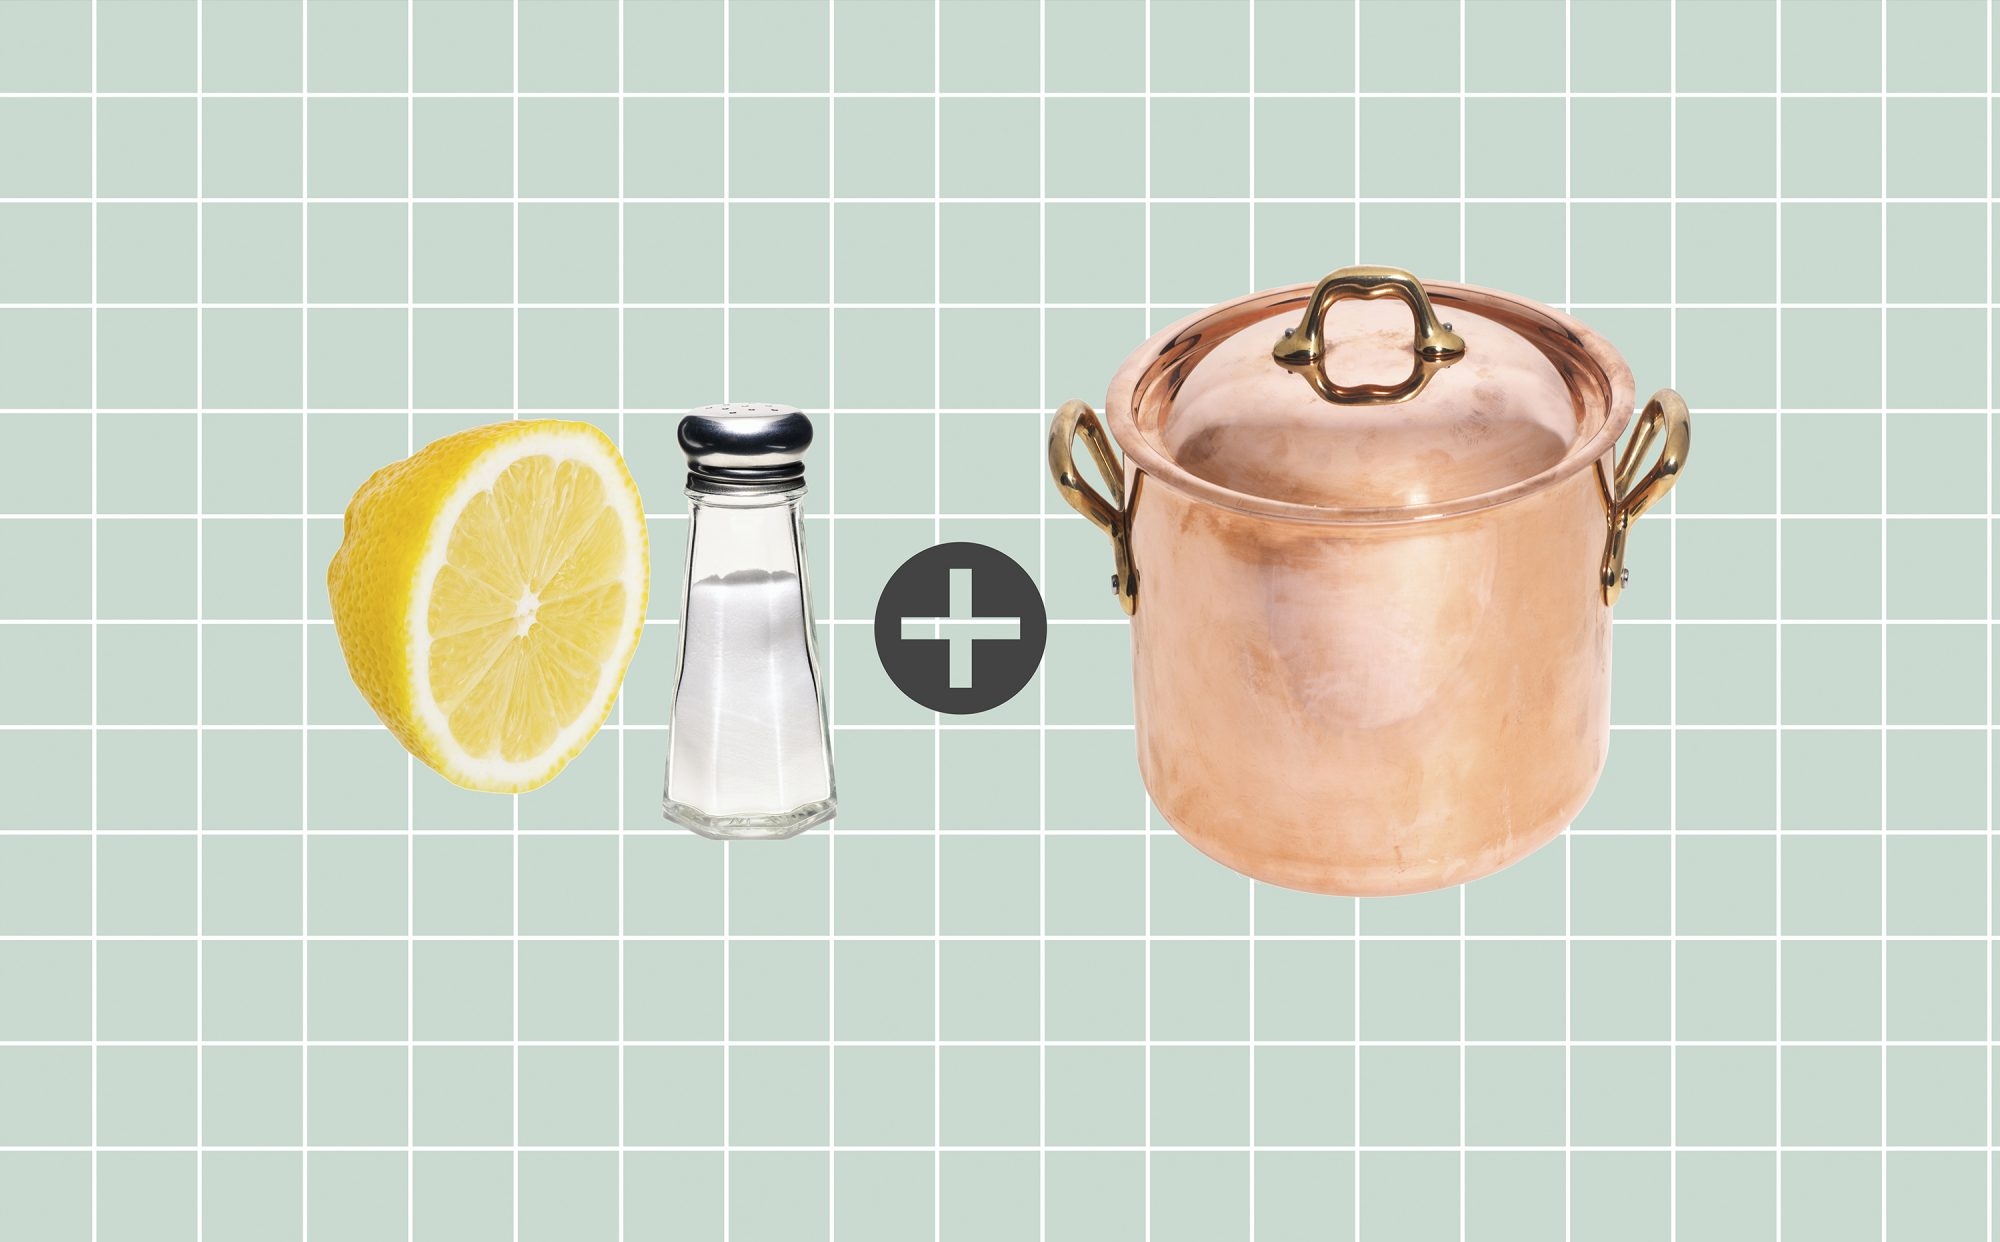 Follow These Easy Steps to Clean Copper Naturally So it Looks Brand New